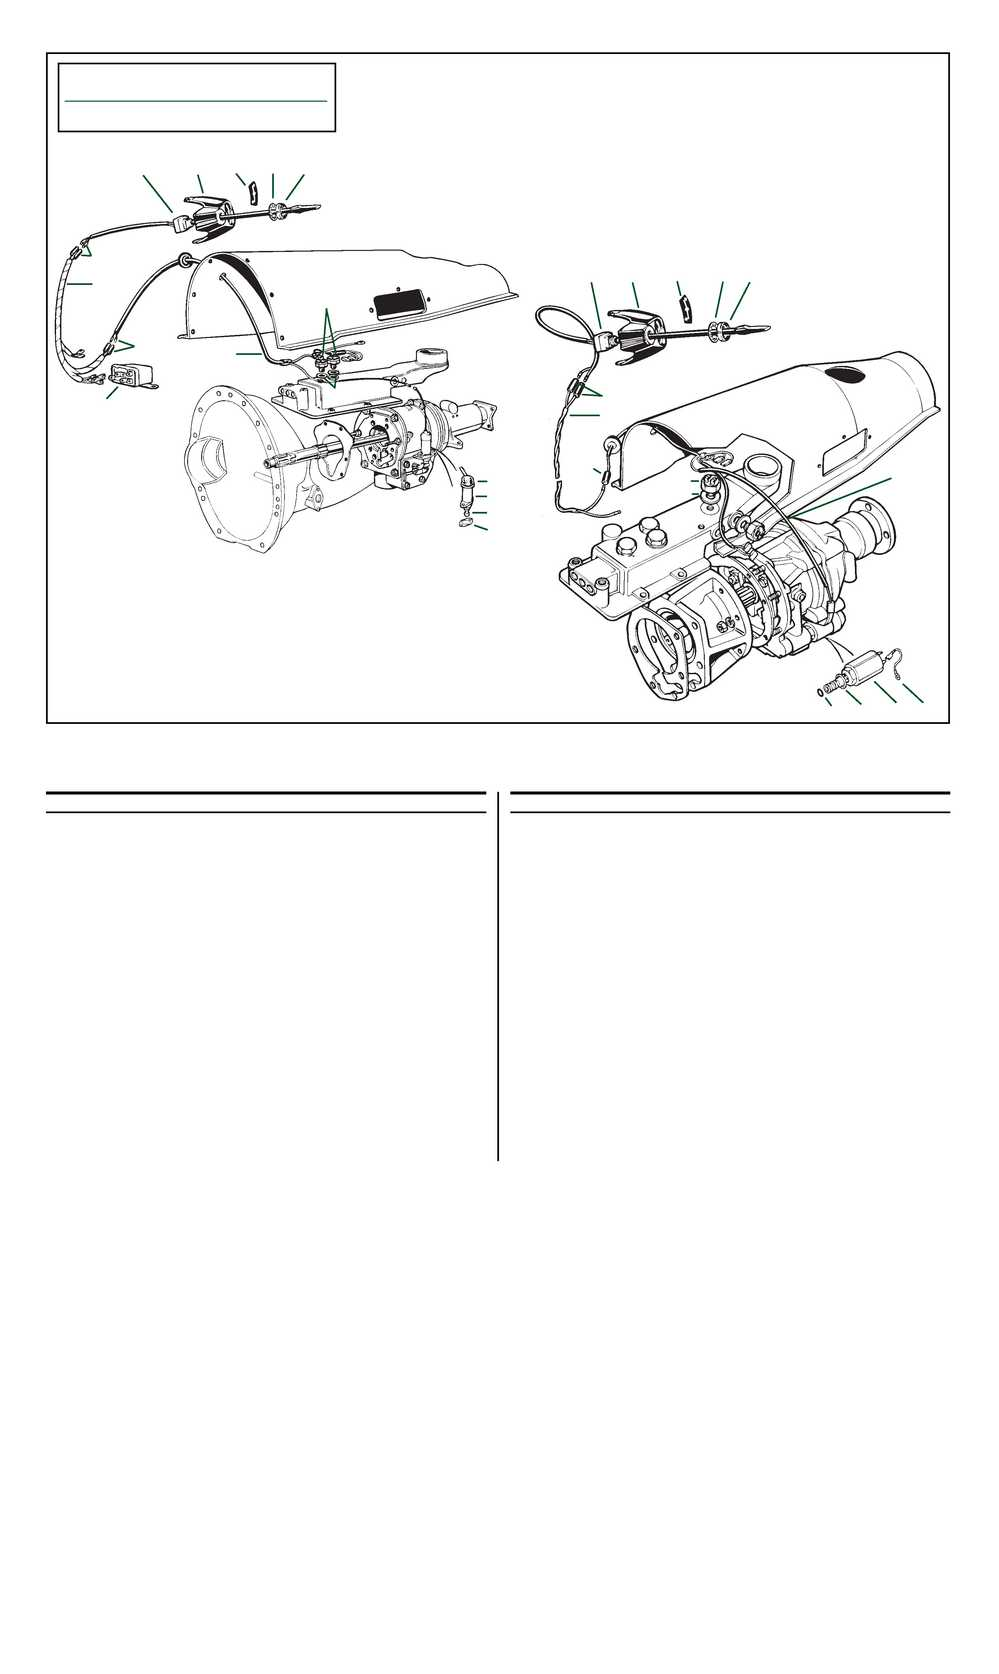 roadster factory overdrive electrical tr6 assembly manual Wiring-Diagram Bypassing an Ammeter Triumph TR6 points of interest on a tr6